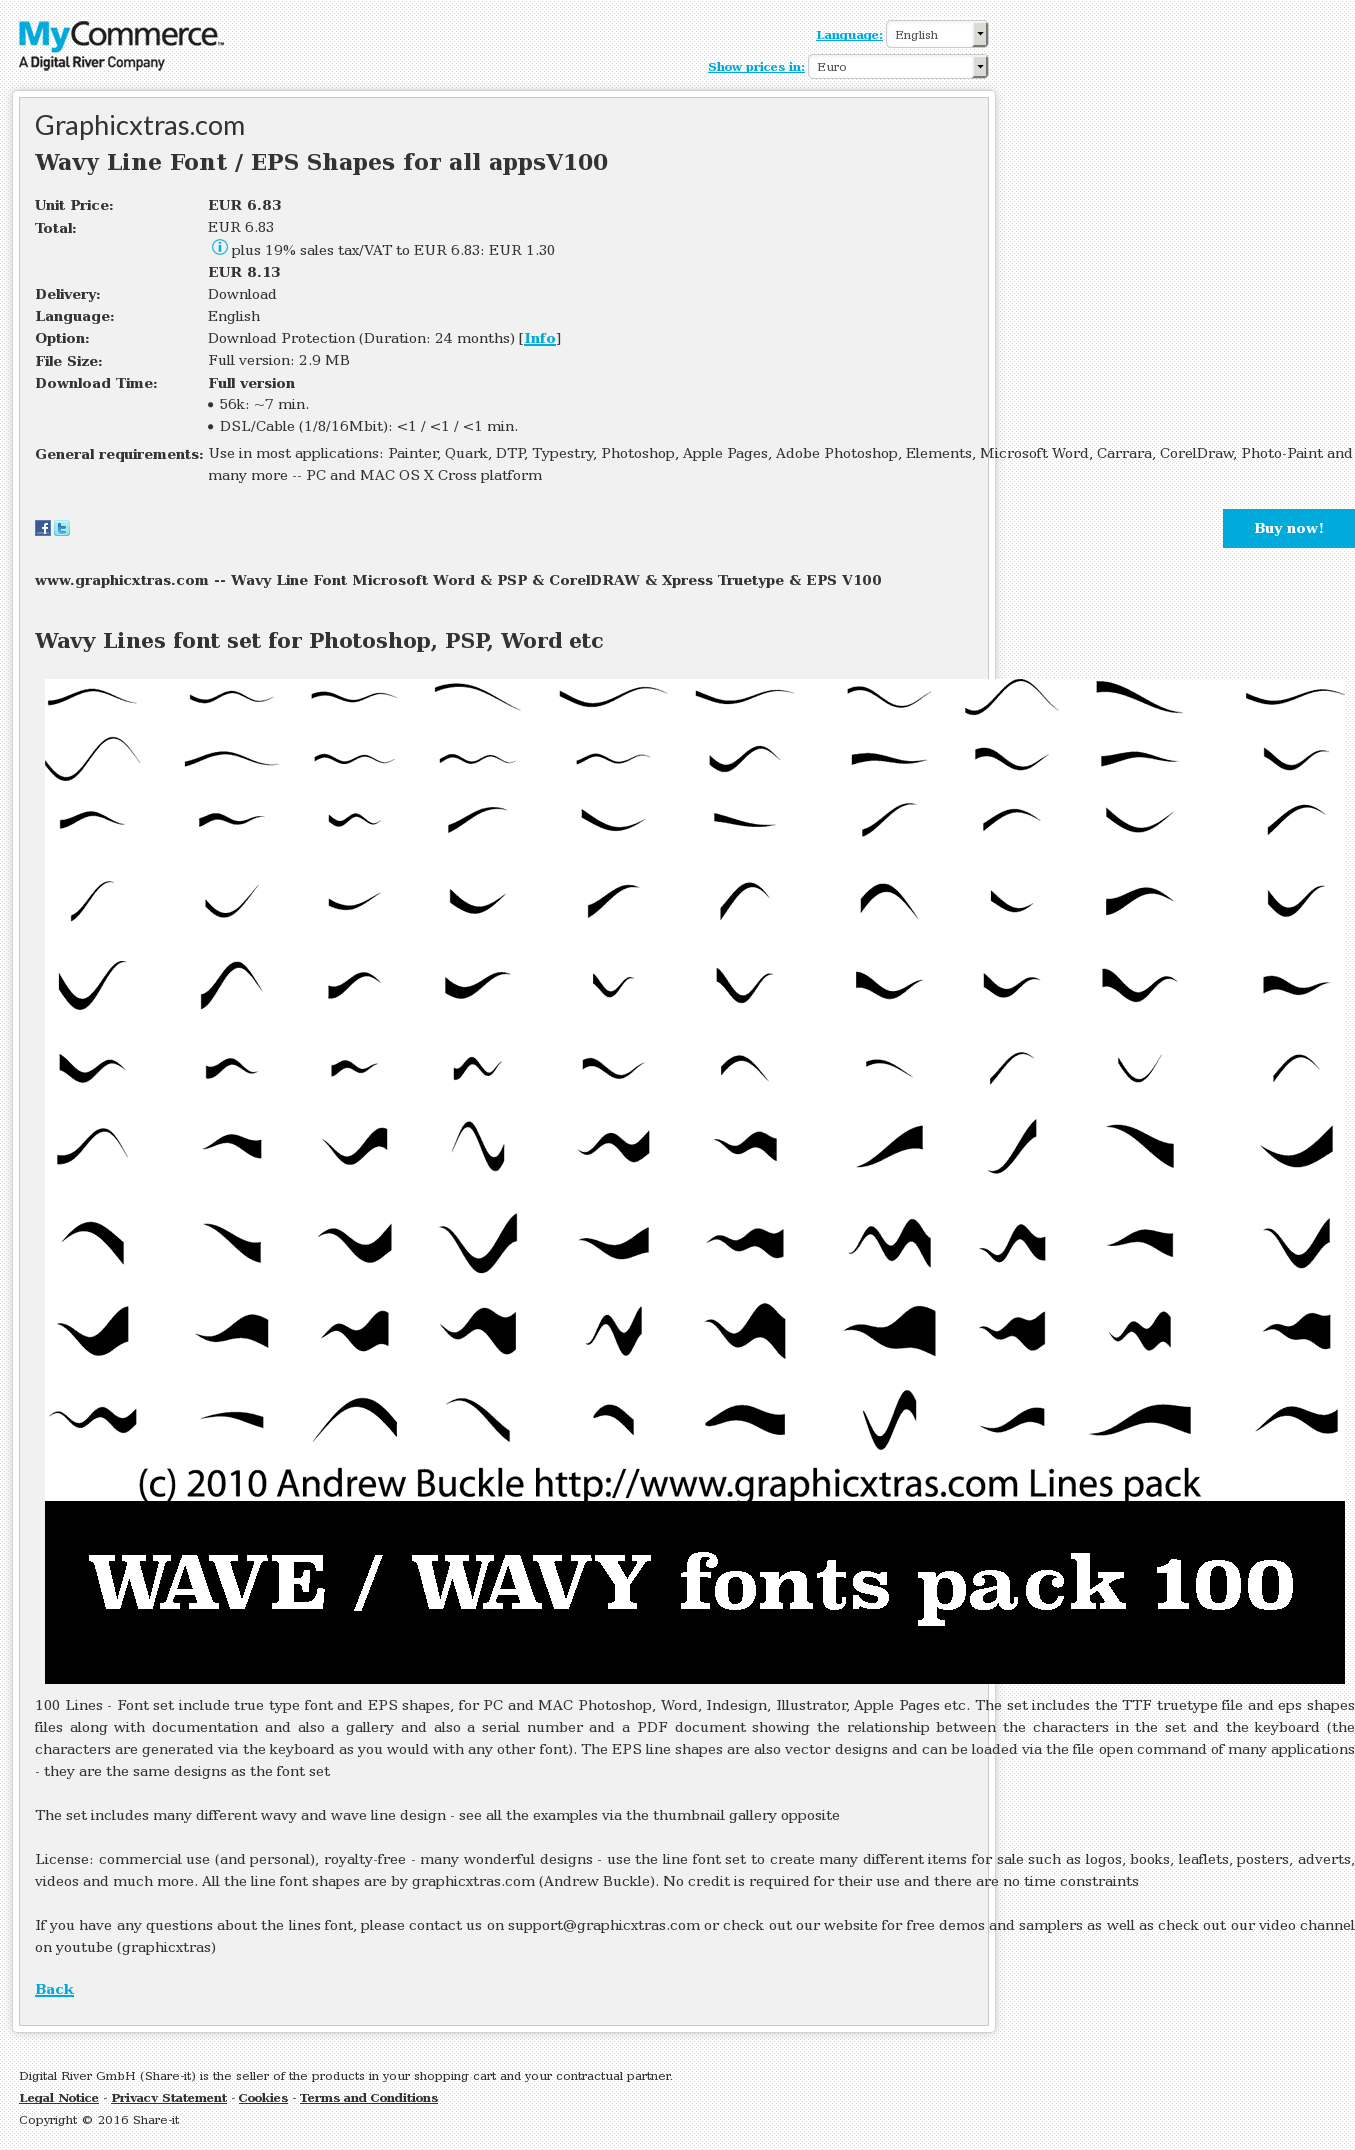 Wavy Line Font Eps Shapes All Appsv Alternative